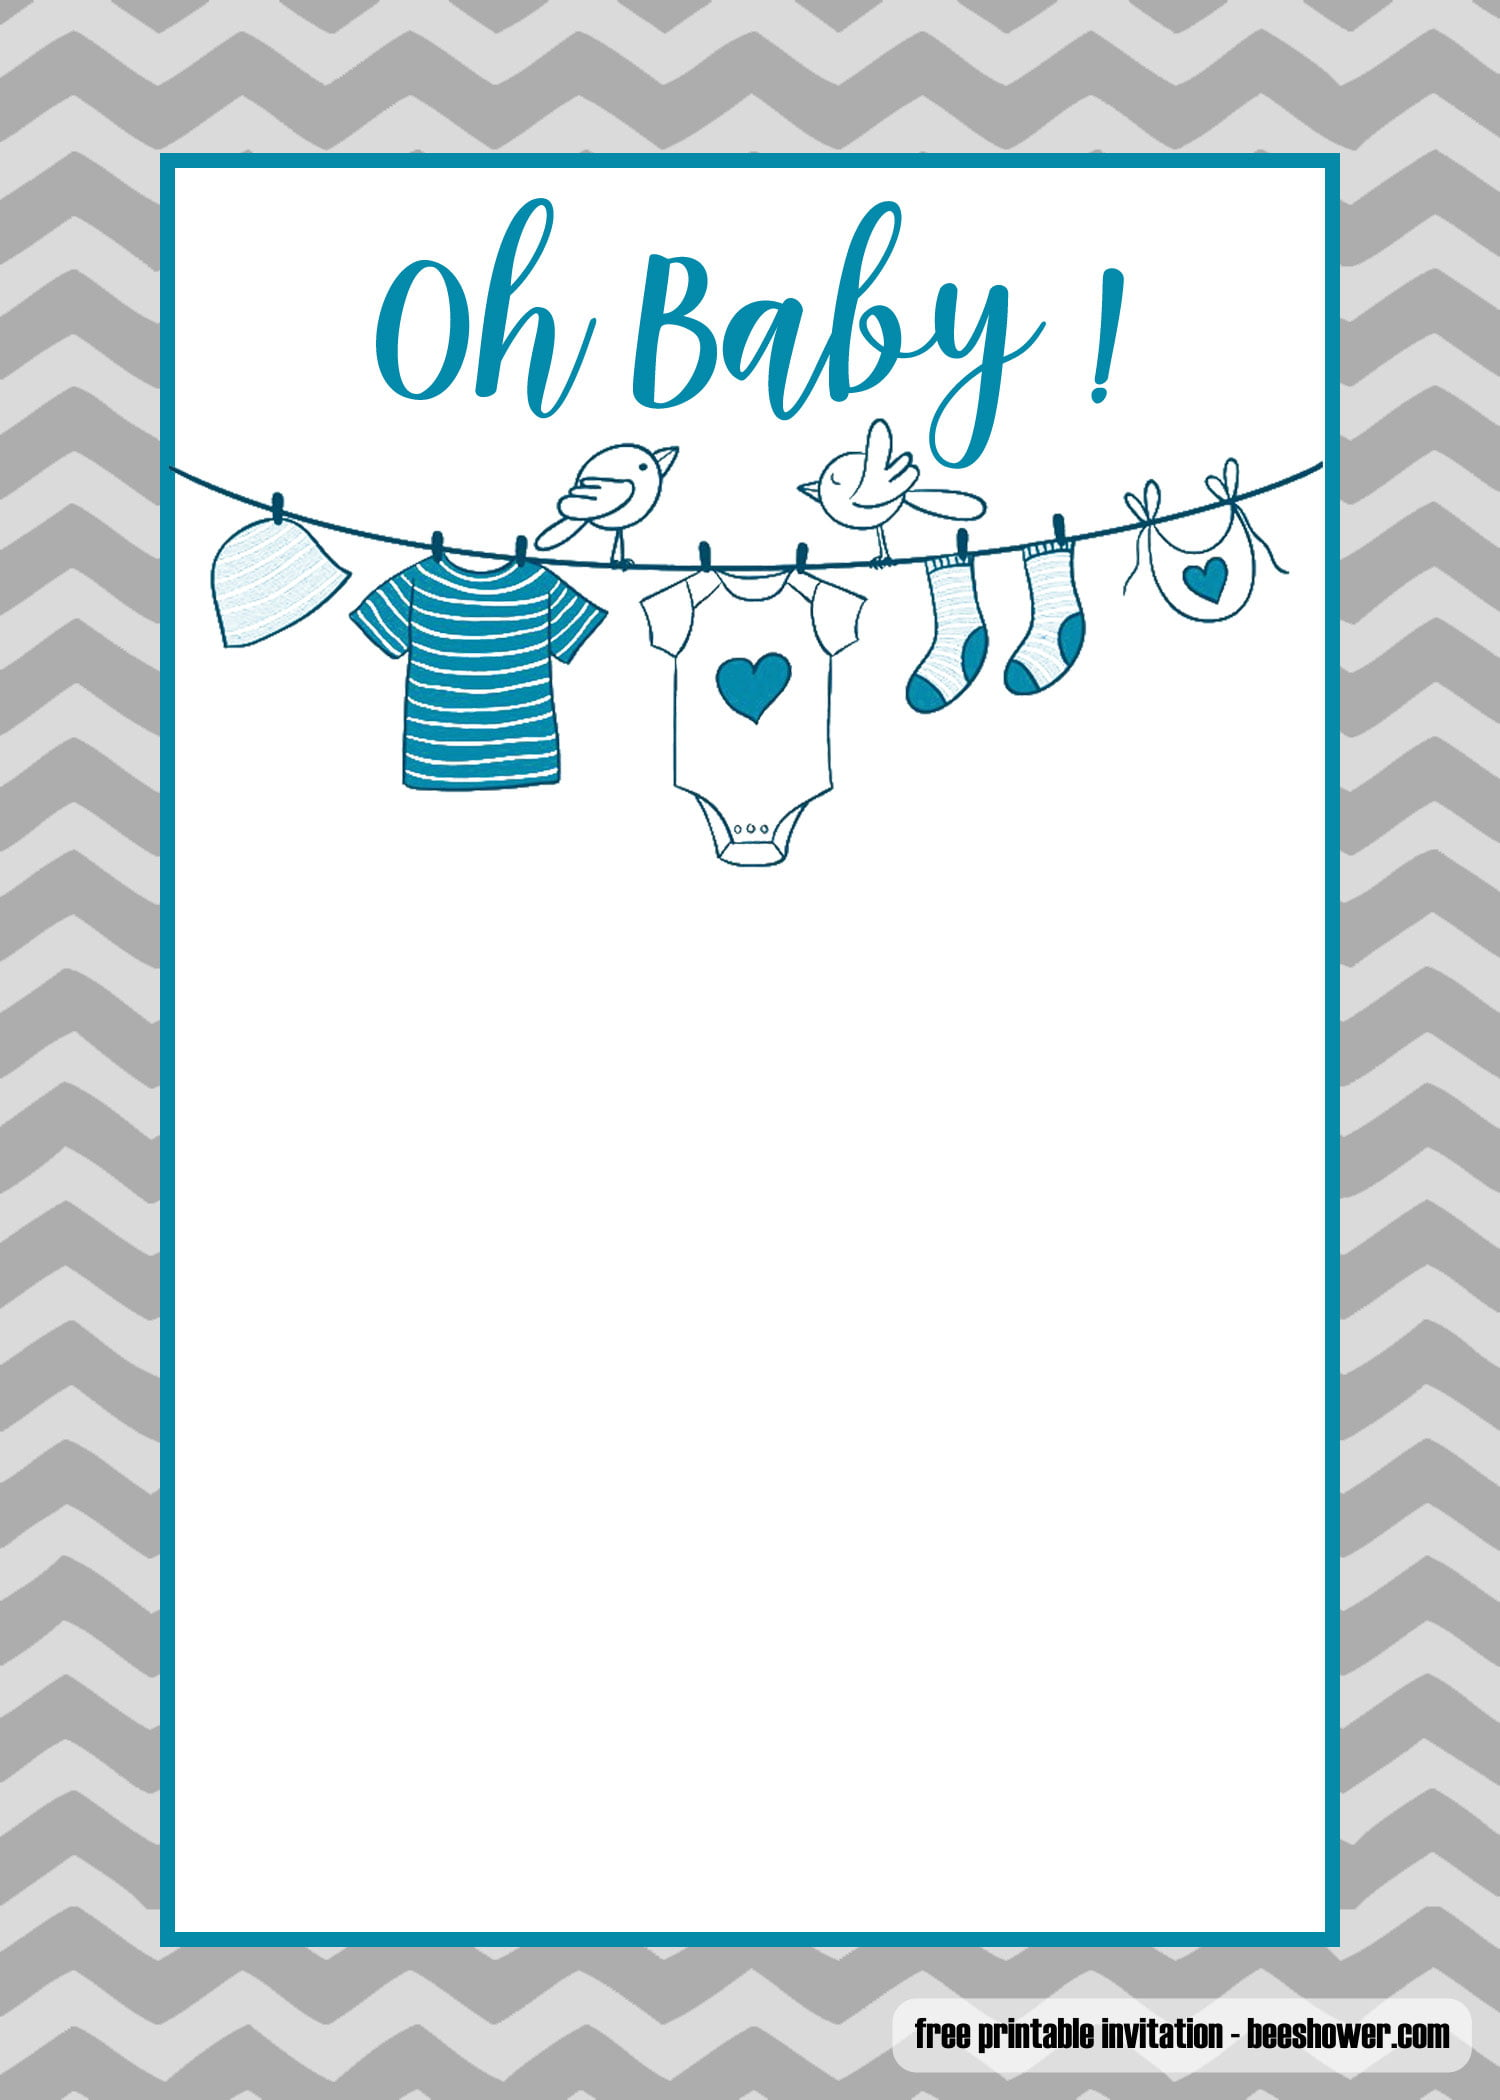 Old Fashioned image throughout baby shower templates printable